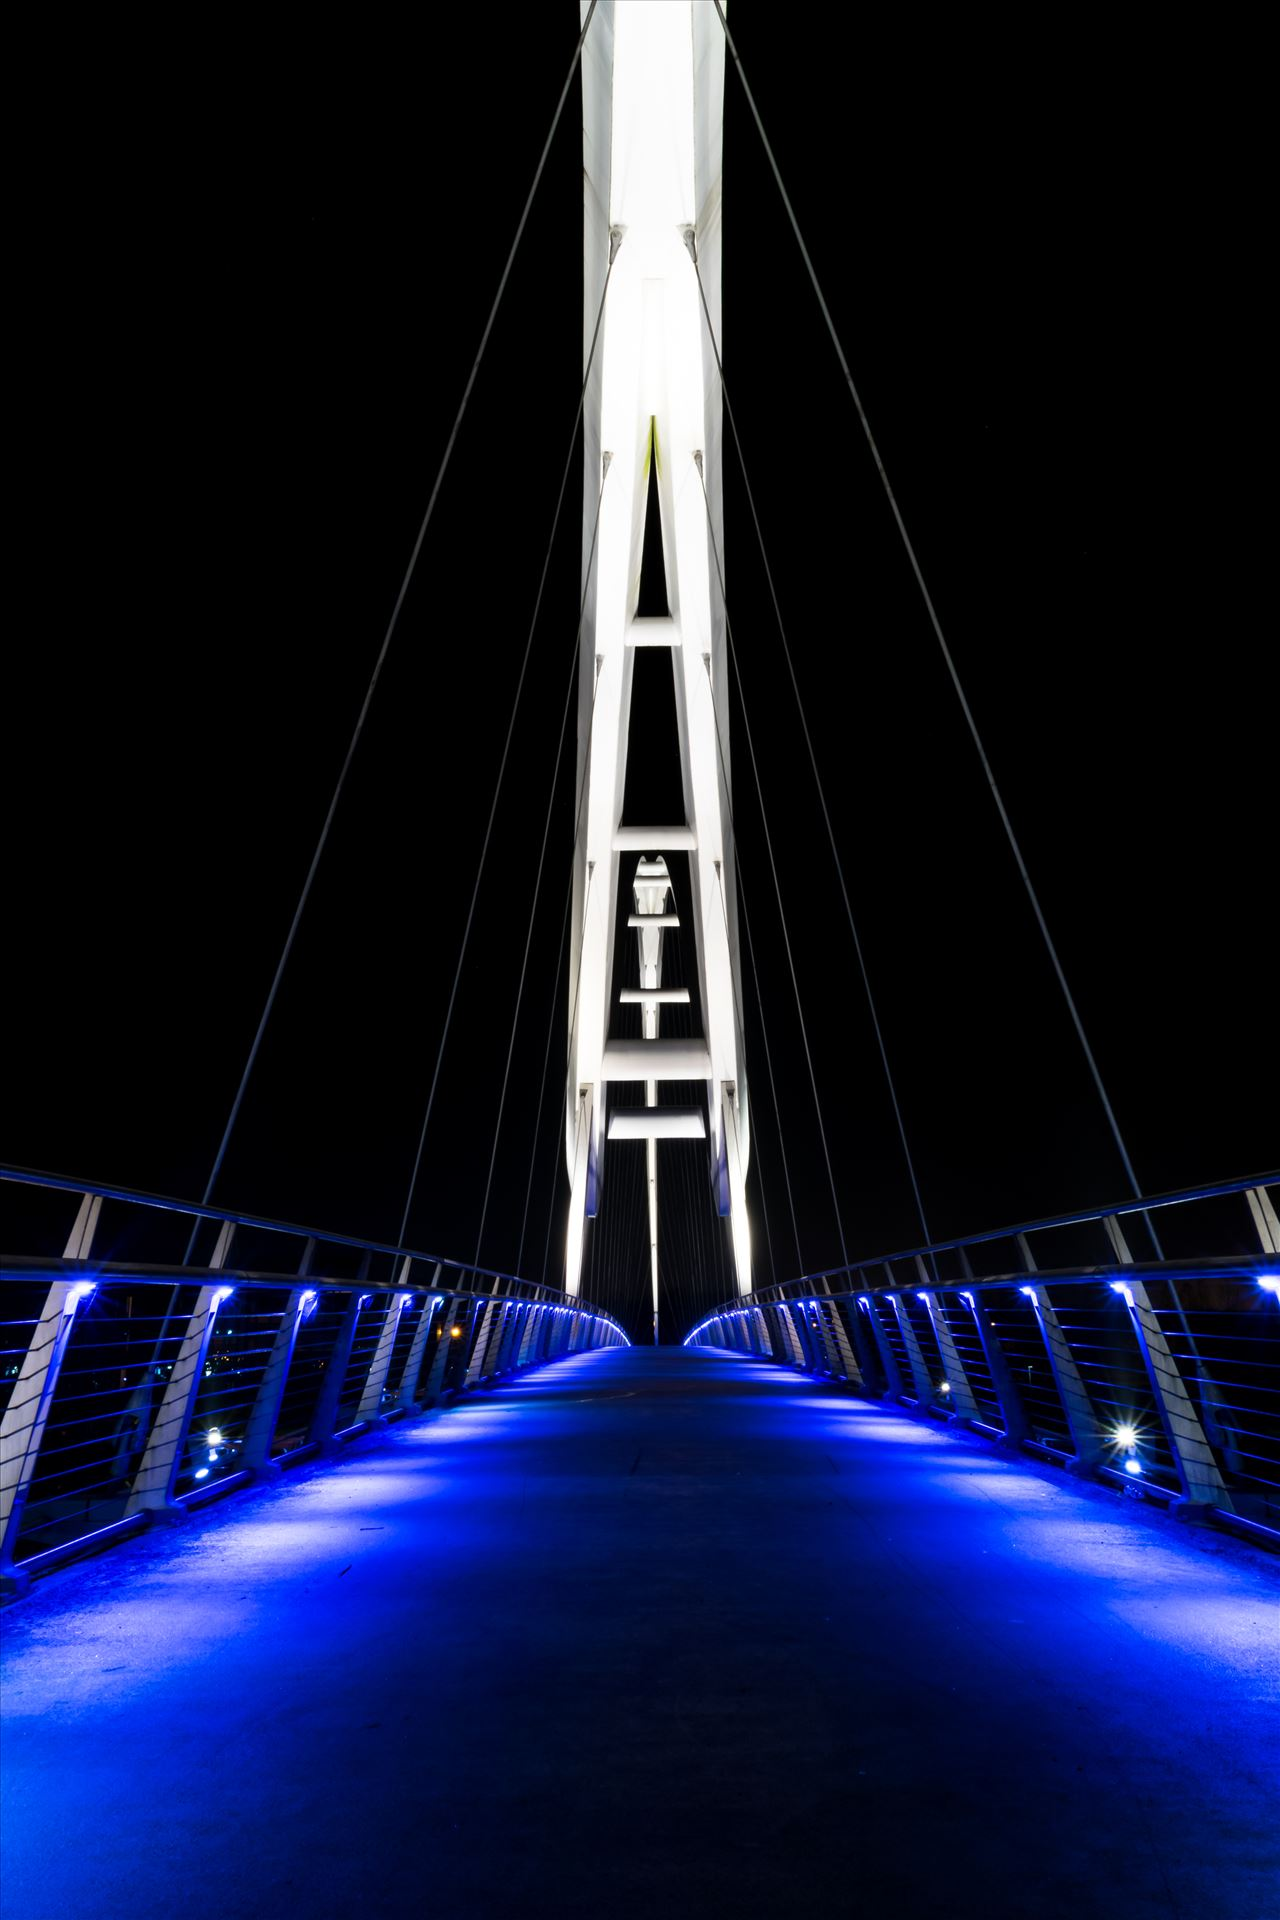 Infinity Bridge at night Stockton on Tees - Infinity Bridge Stockton on Tees at night by AJ Stoves Photography